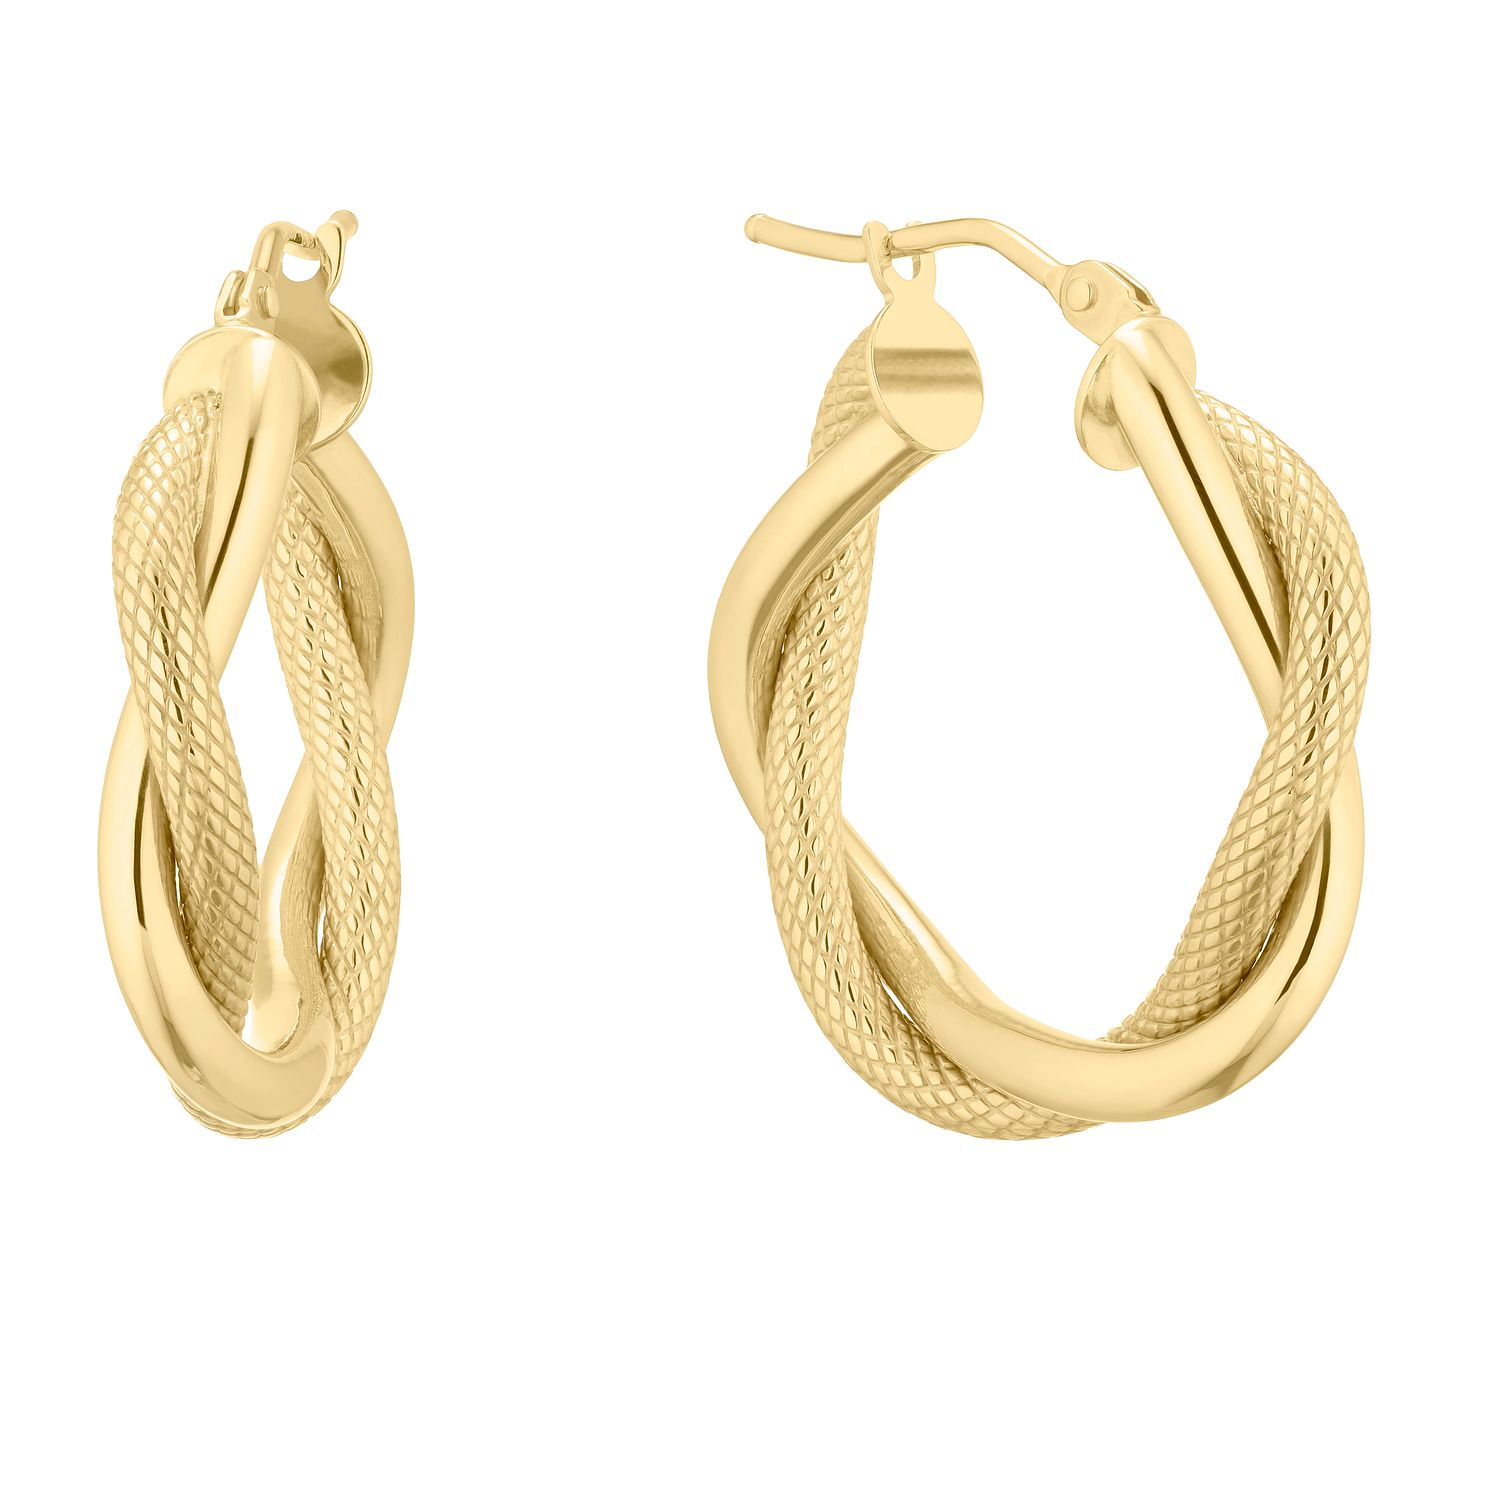 9ct Yellow Gold Twist Creole Hoop Earrings - Product number 5241324